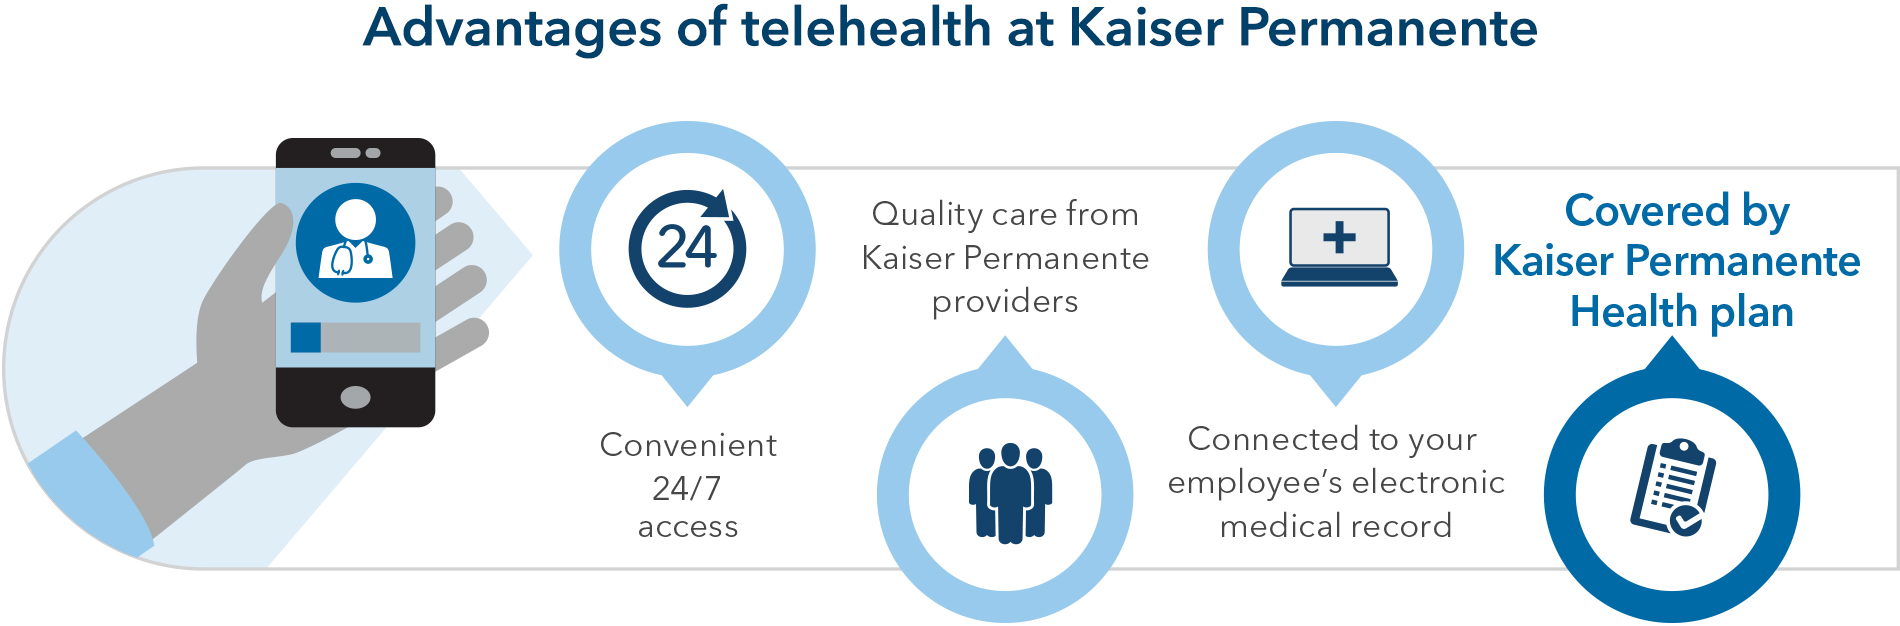 The advantages of telehealth at Kaiser Permanente are convenient 24/7 access, quality care from Kaiser Permanente providers, and connection to your employee's electronic medical record, all covered by your Kaiser Permanente health plan.